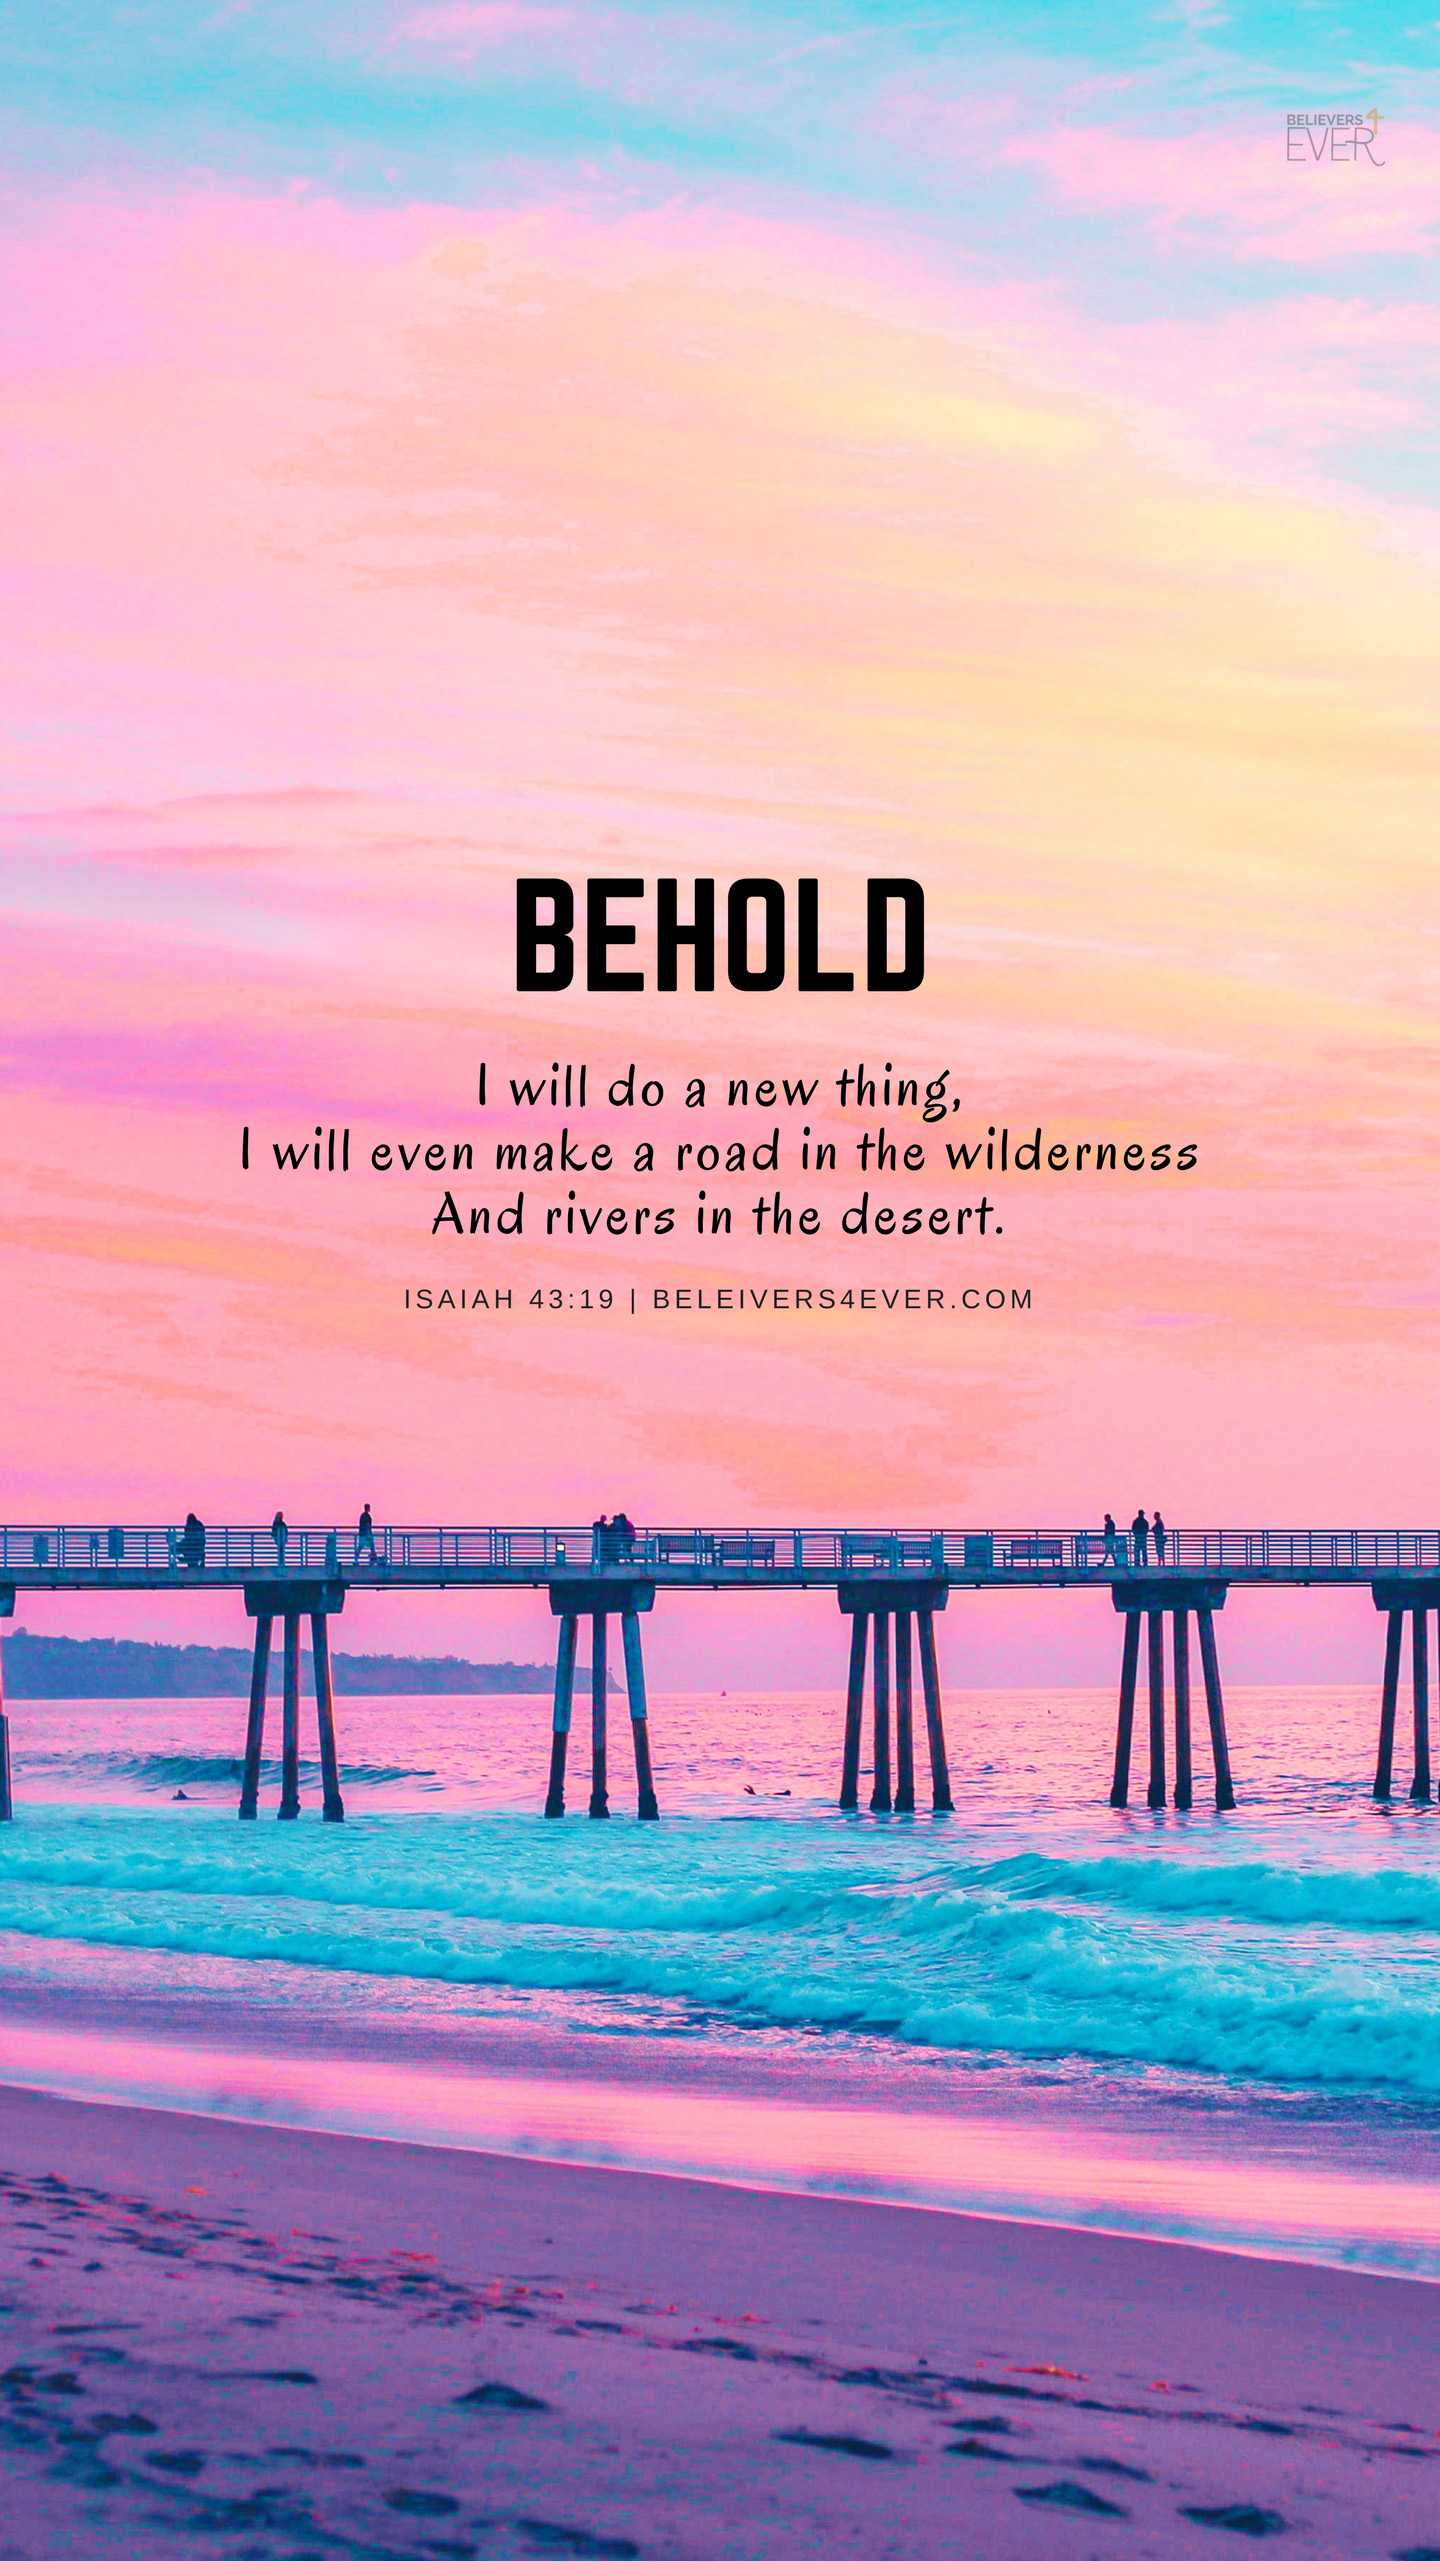 Behold, I will do a new thing Isaiah 43:19